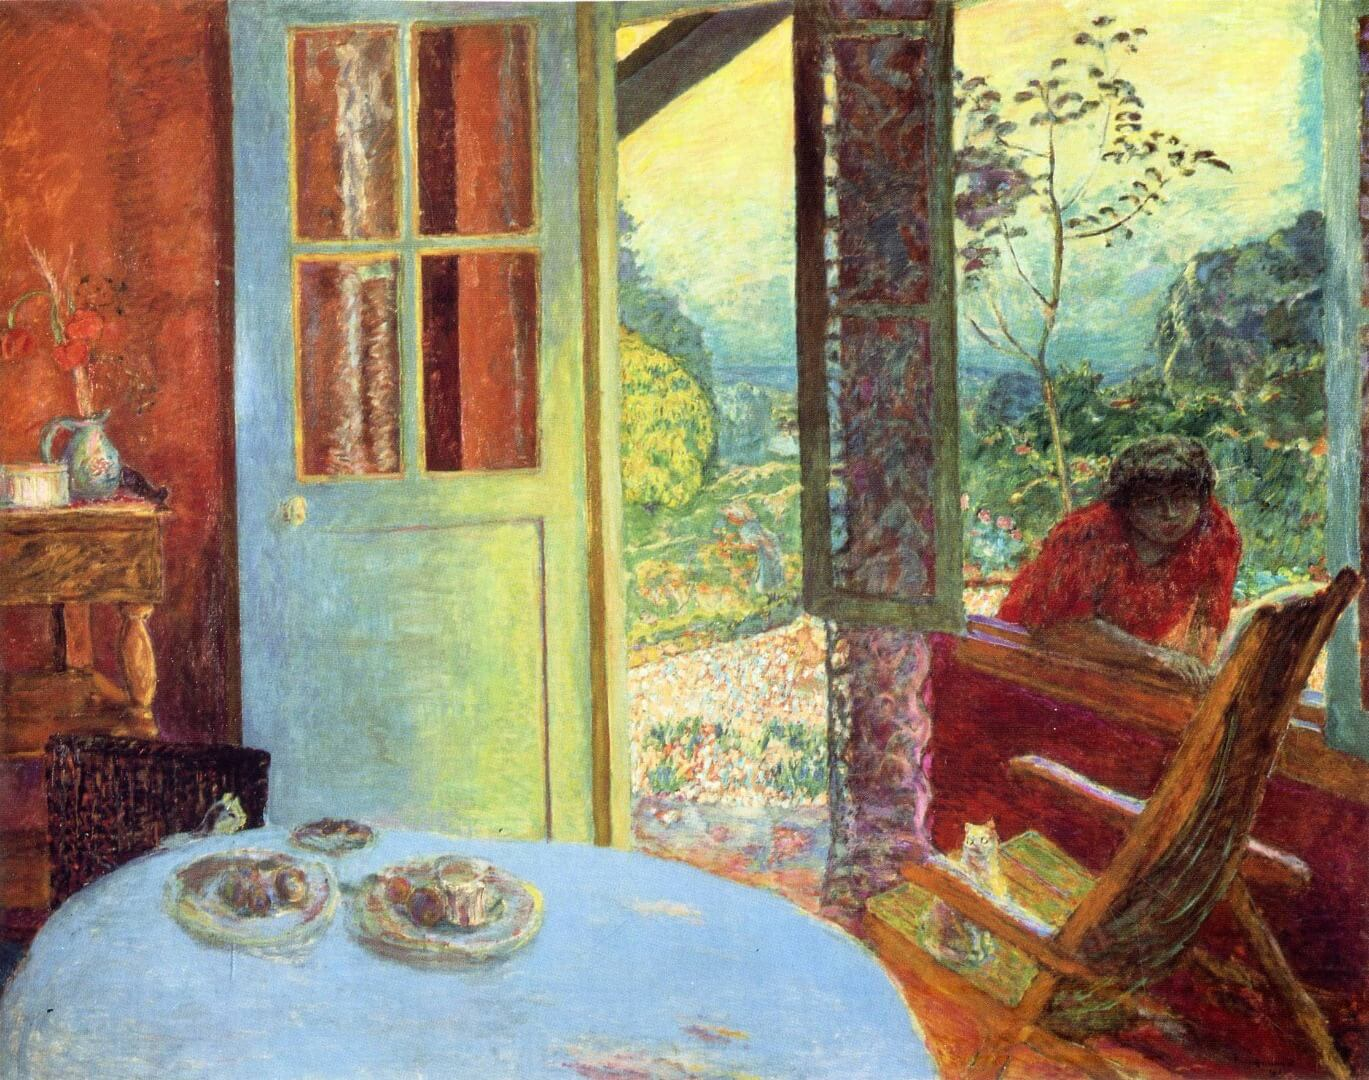 The_dining_room_in_the_country_by_Pierre_Bonnard_(1913)